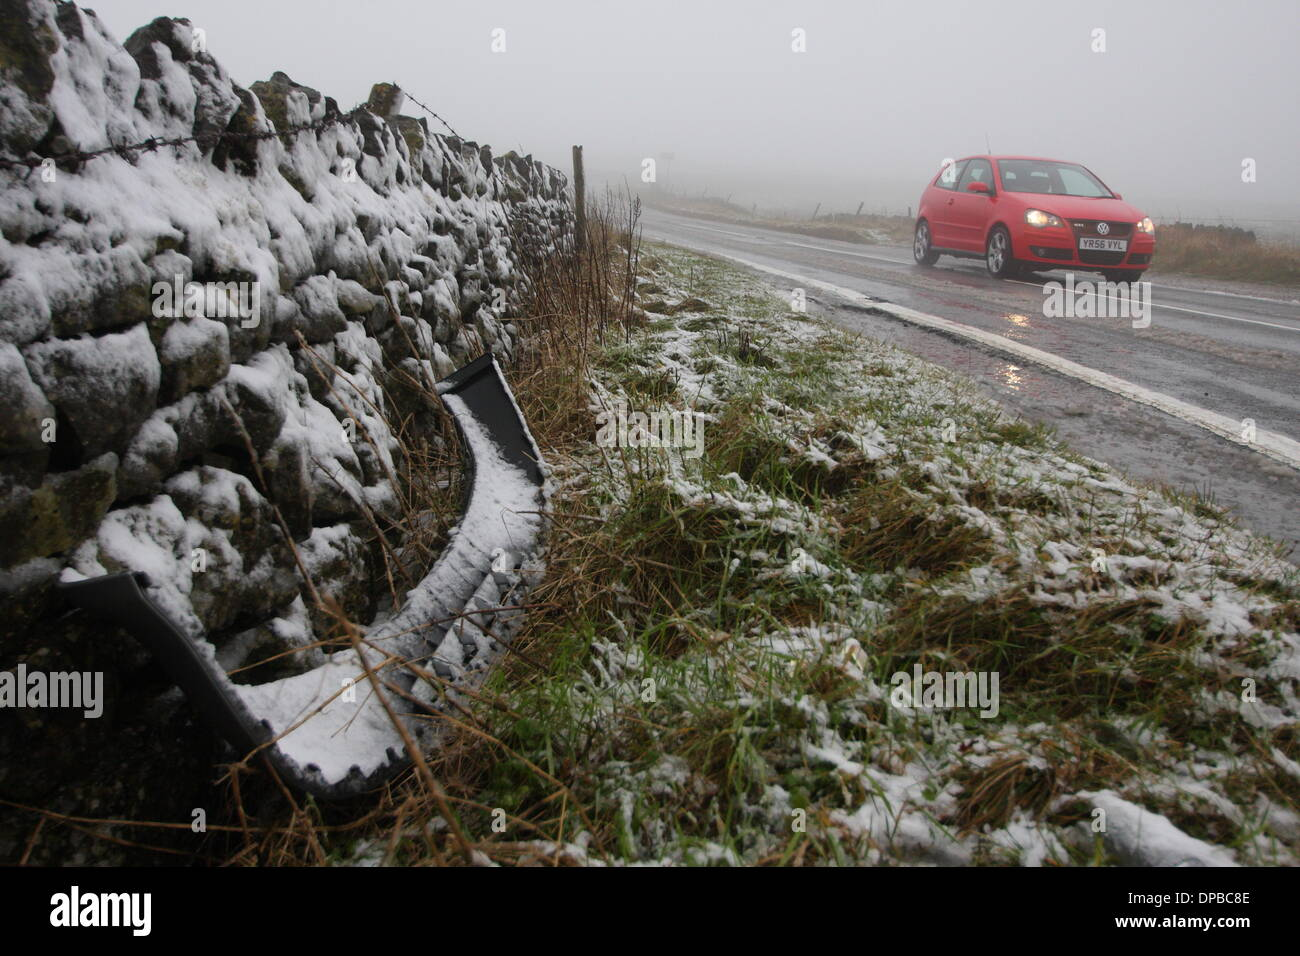 Peak District, Derbyshire, UK. 11th January 2014. 11 Jan 2014  Wintry conditions on the A6187 near Castleton made for extra tricky driving conditions after overnight snowfall hit stretches of high ground iin Derbyshire's Peak District. Credit:  Matthew Taylor/Alamy Live News - Stock Image